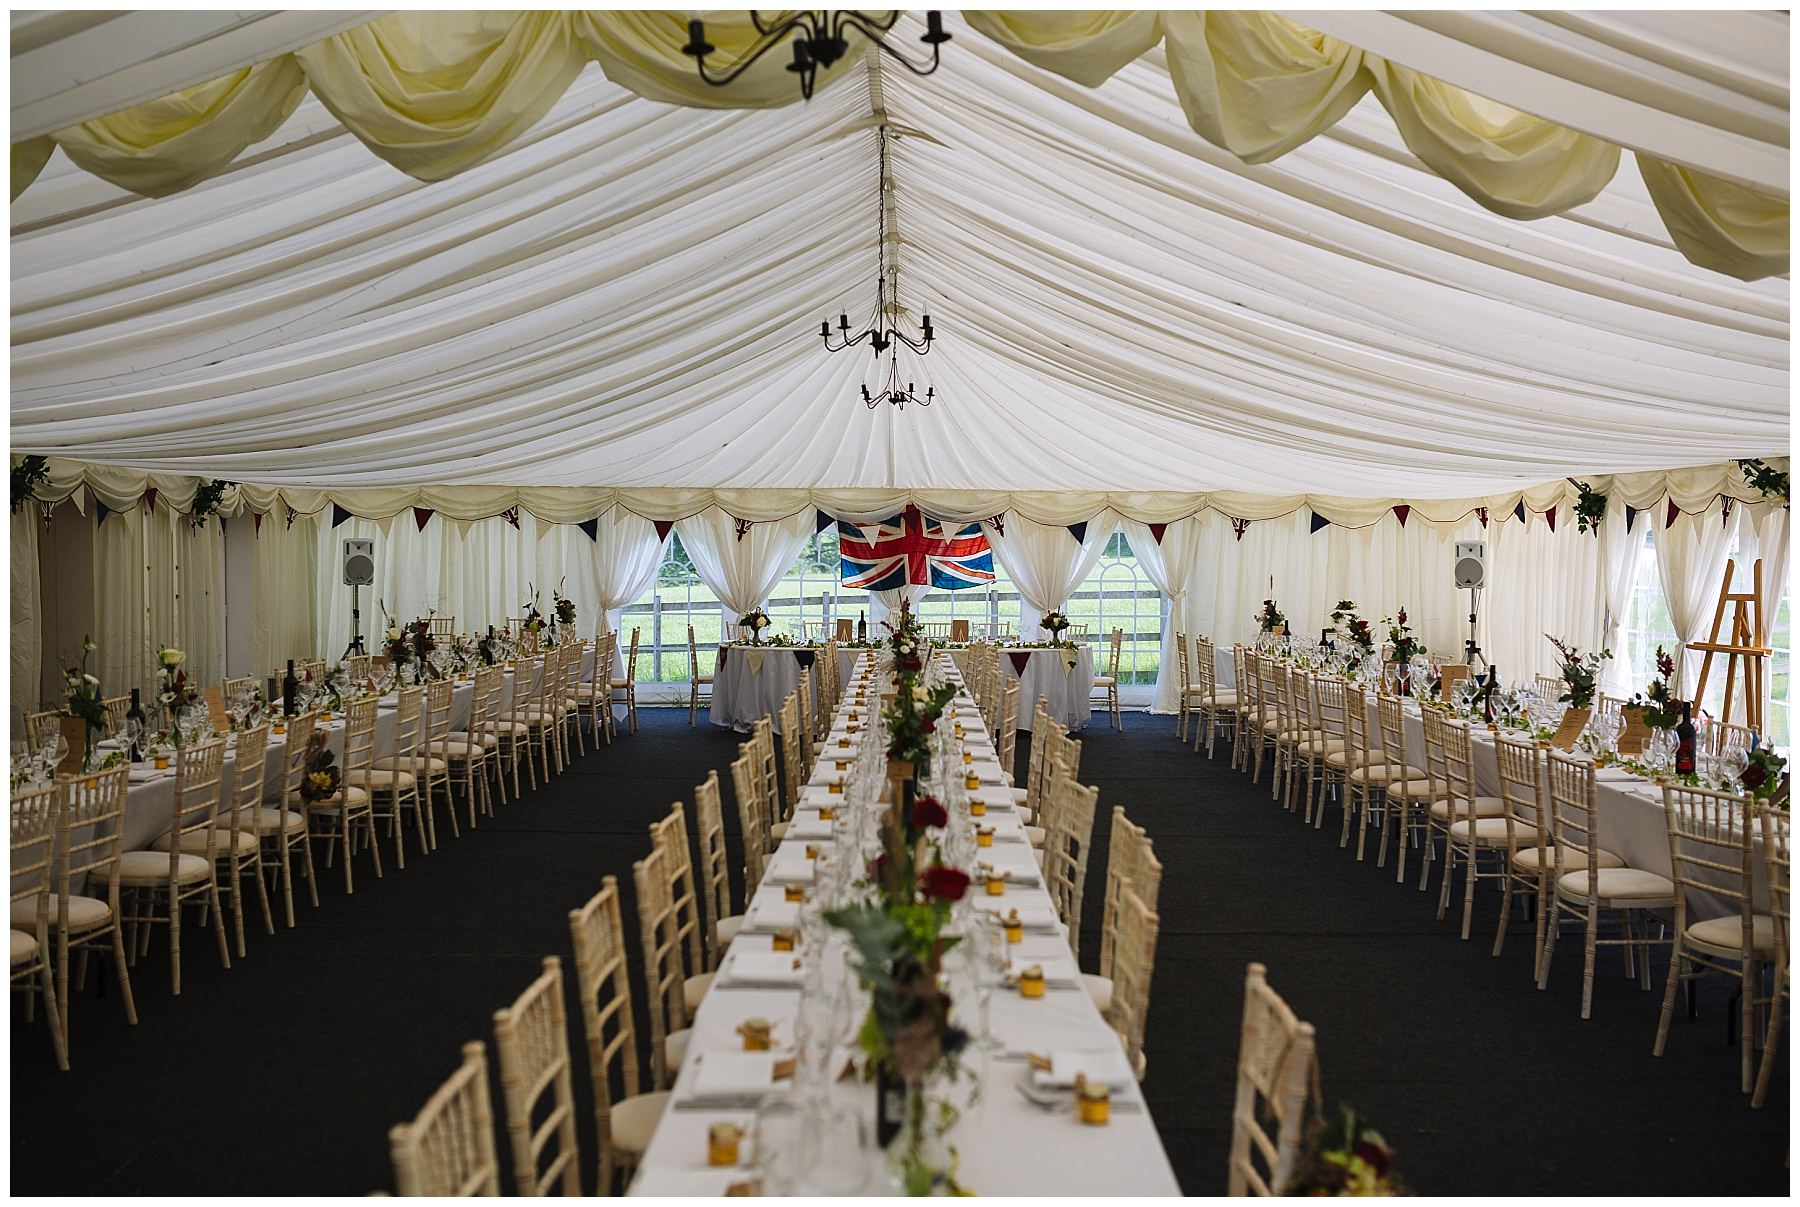 Hilltop House Marquee set out for informal wedding breakfast